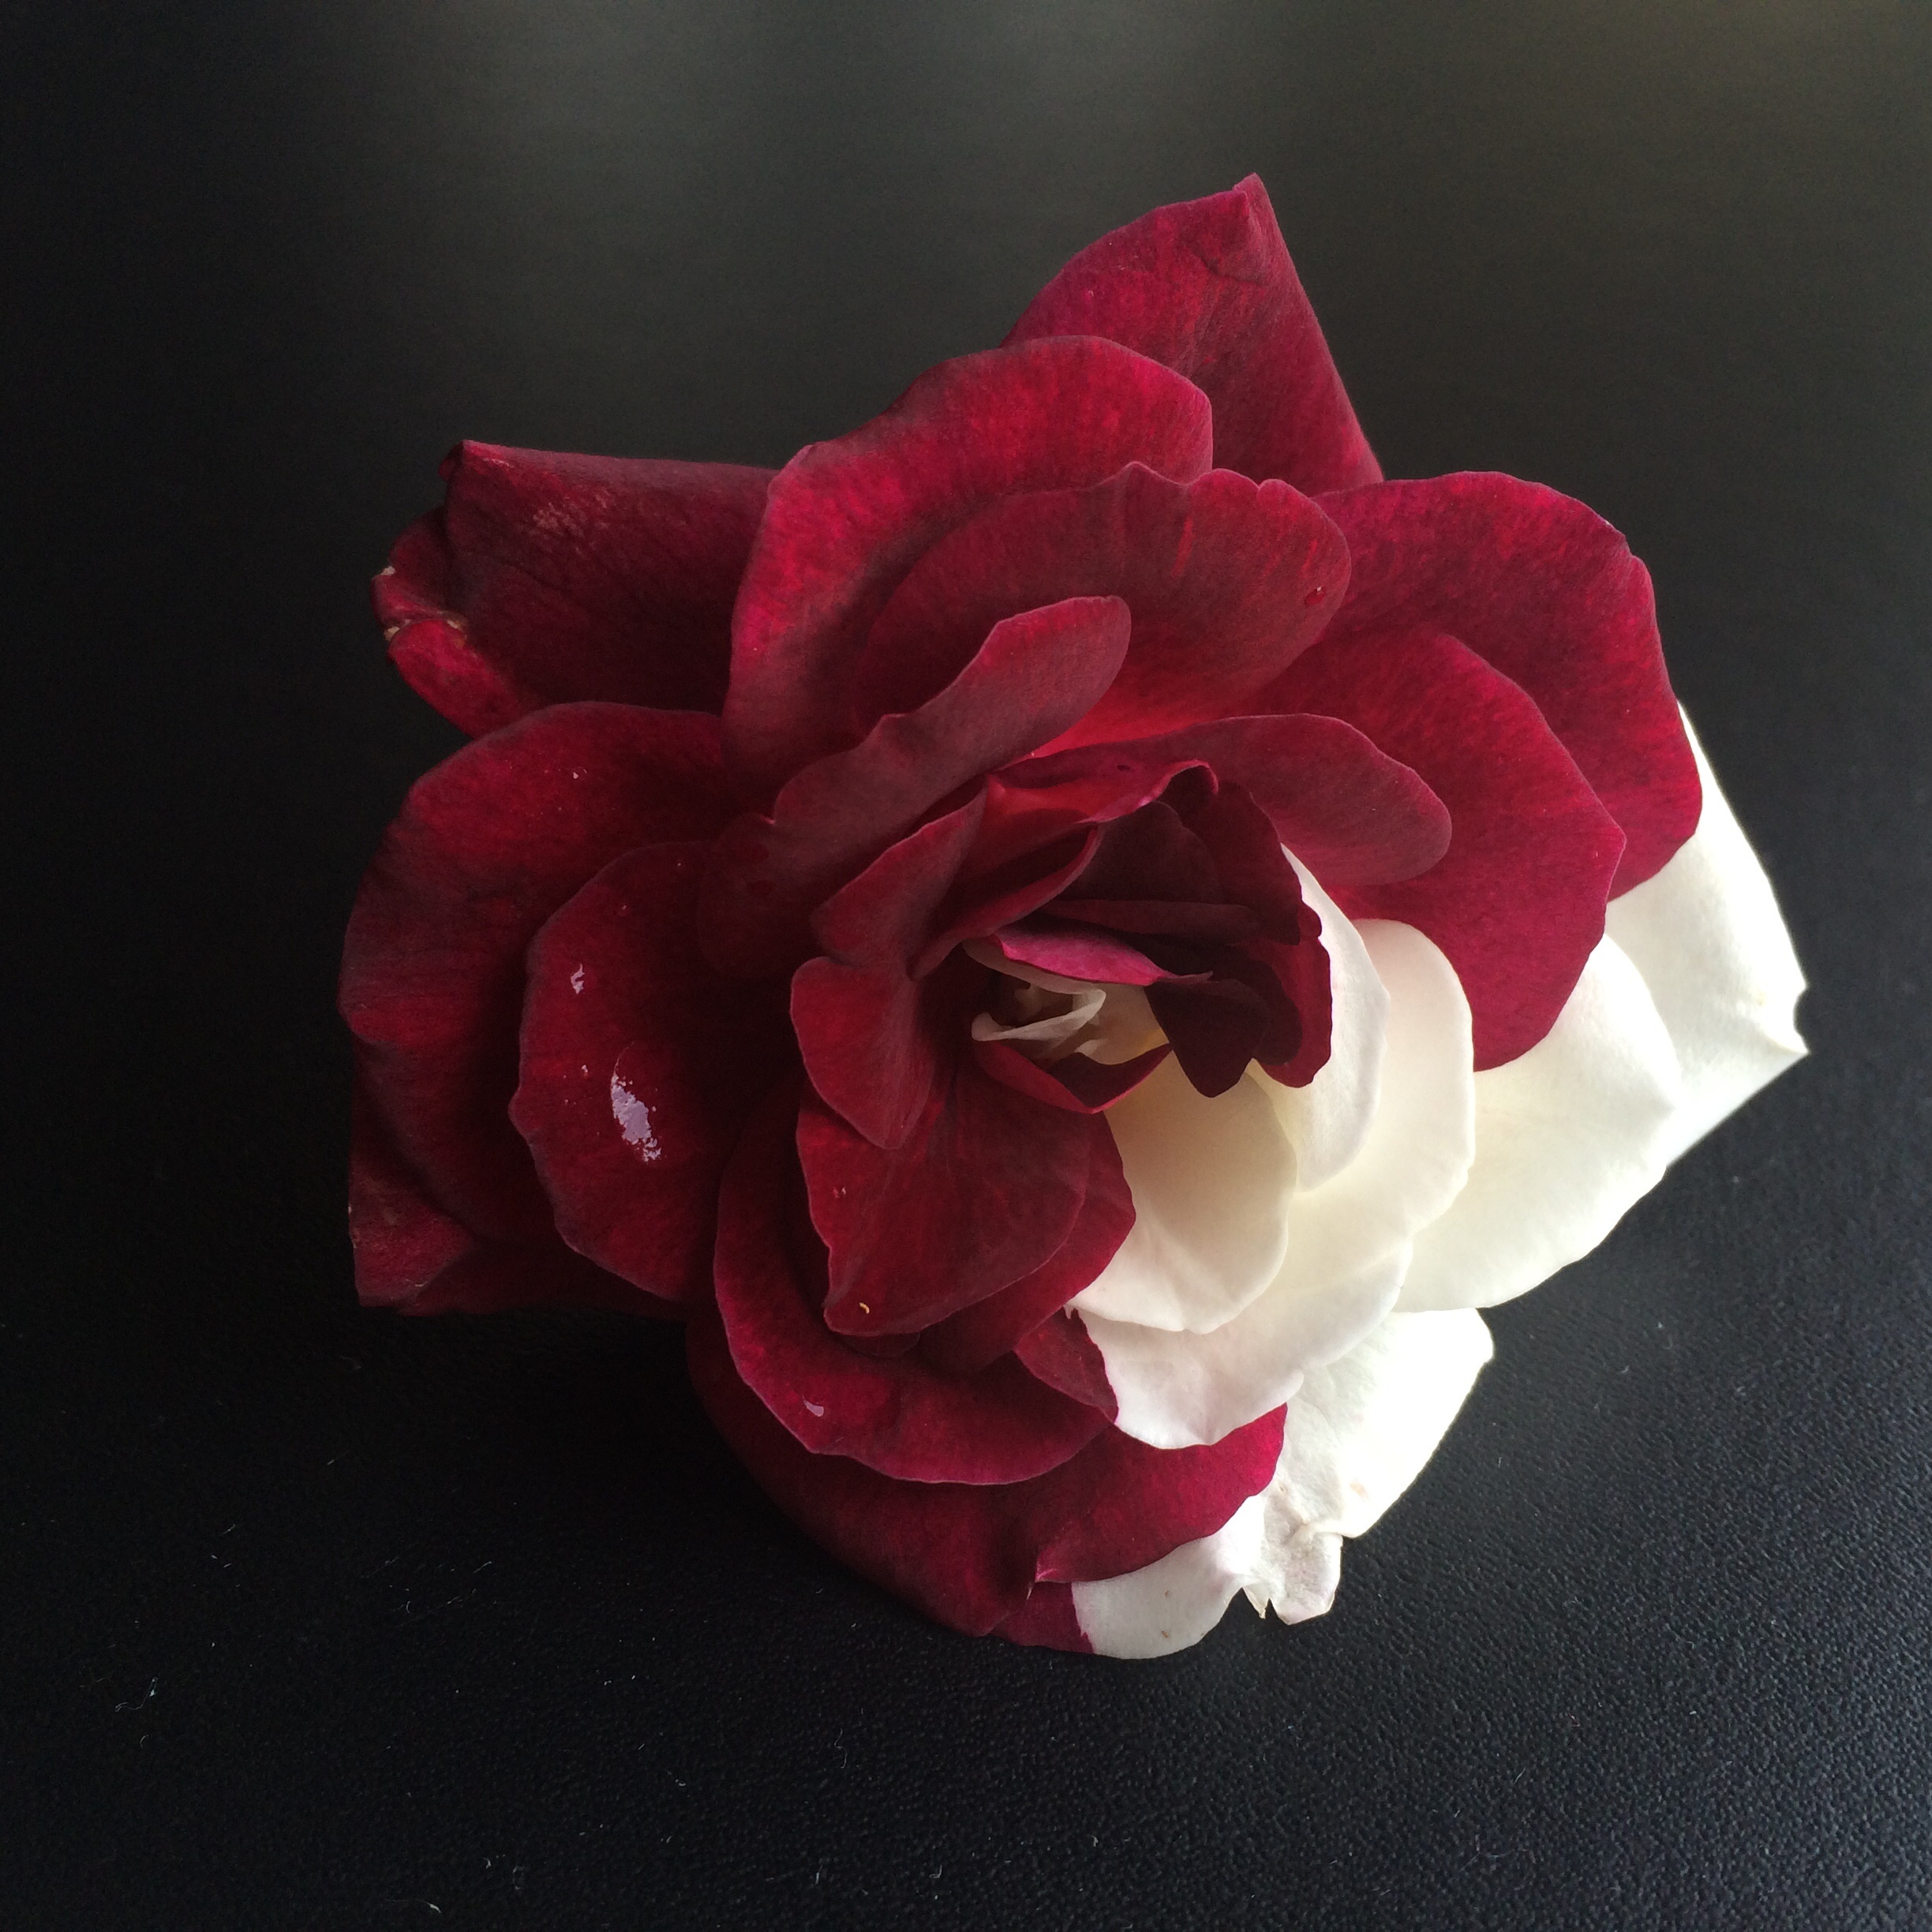 Half red, half white rose - Ask an Expert